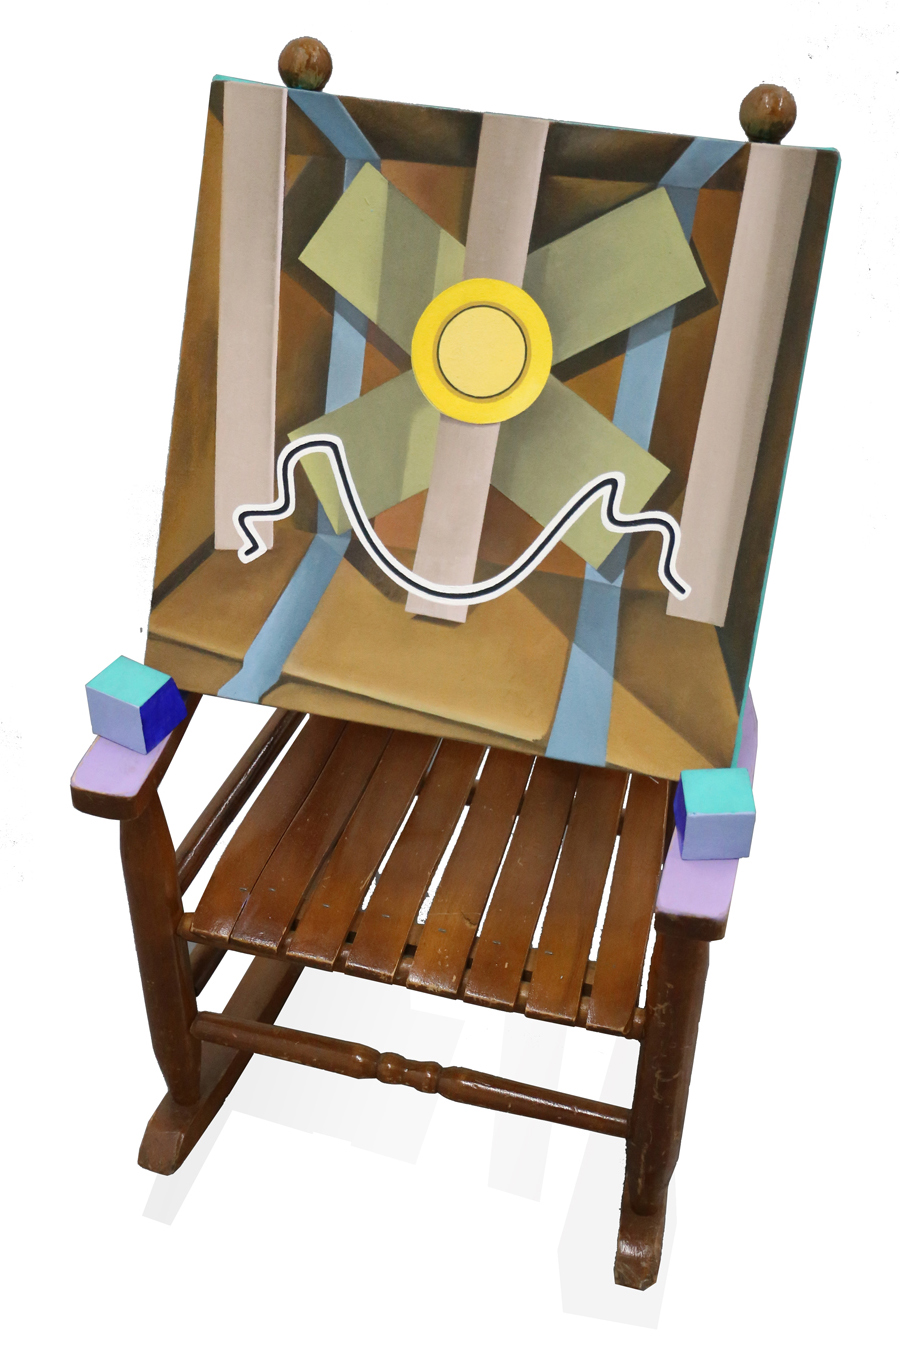 Smiley Face      26 x 14 x 14 in, Oil on canvas, Oil on wood, Found chair, 2017